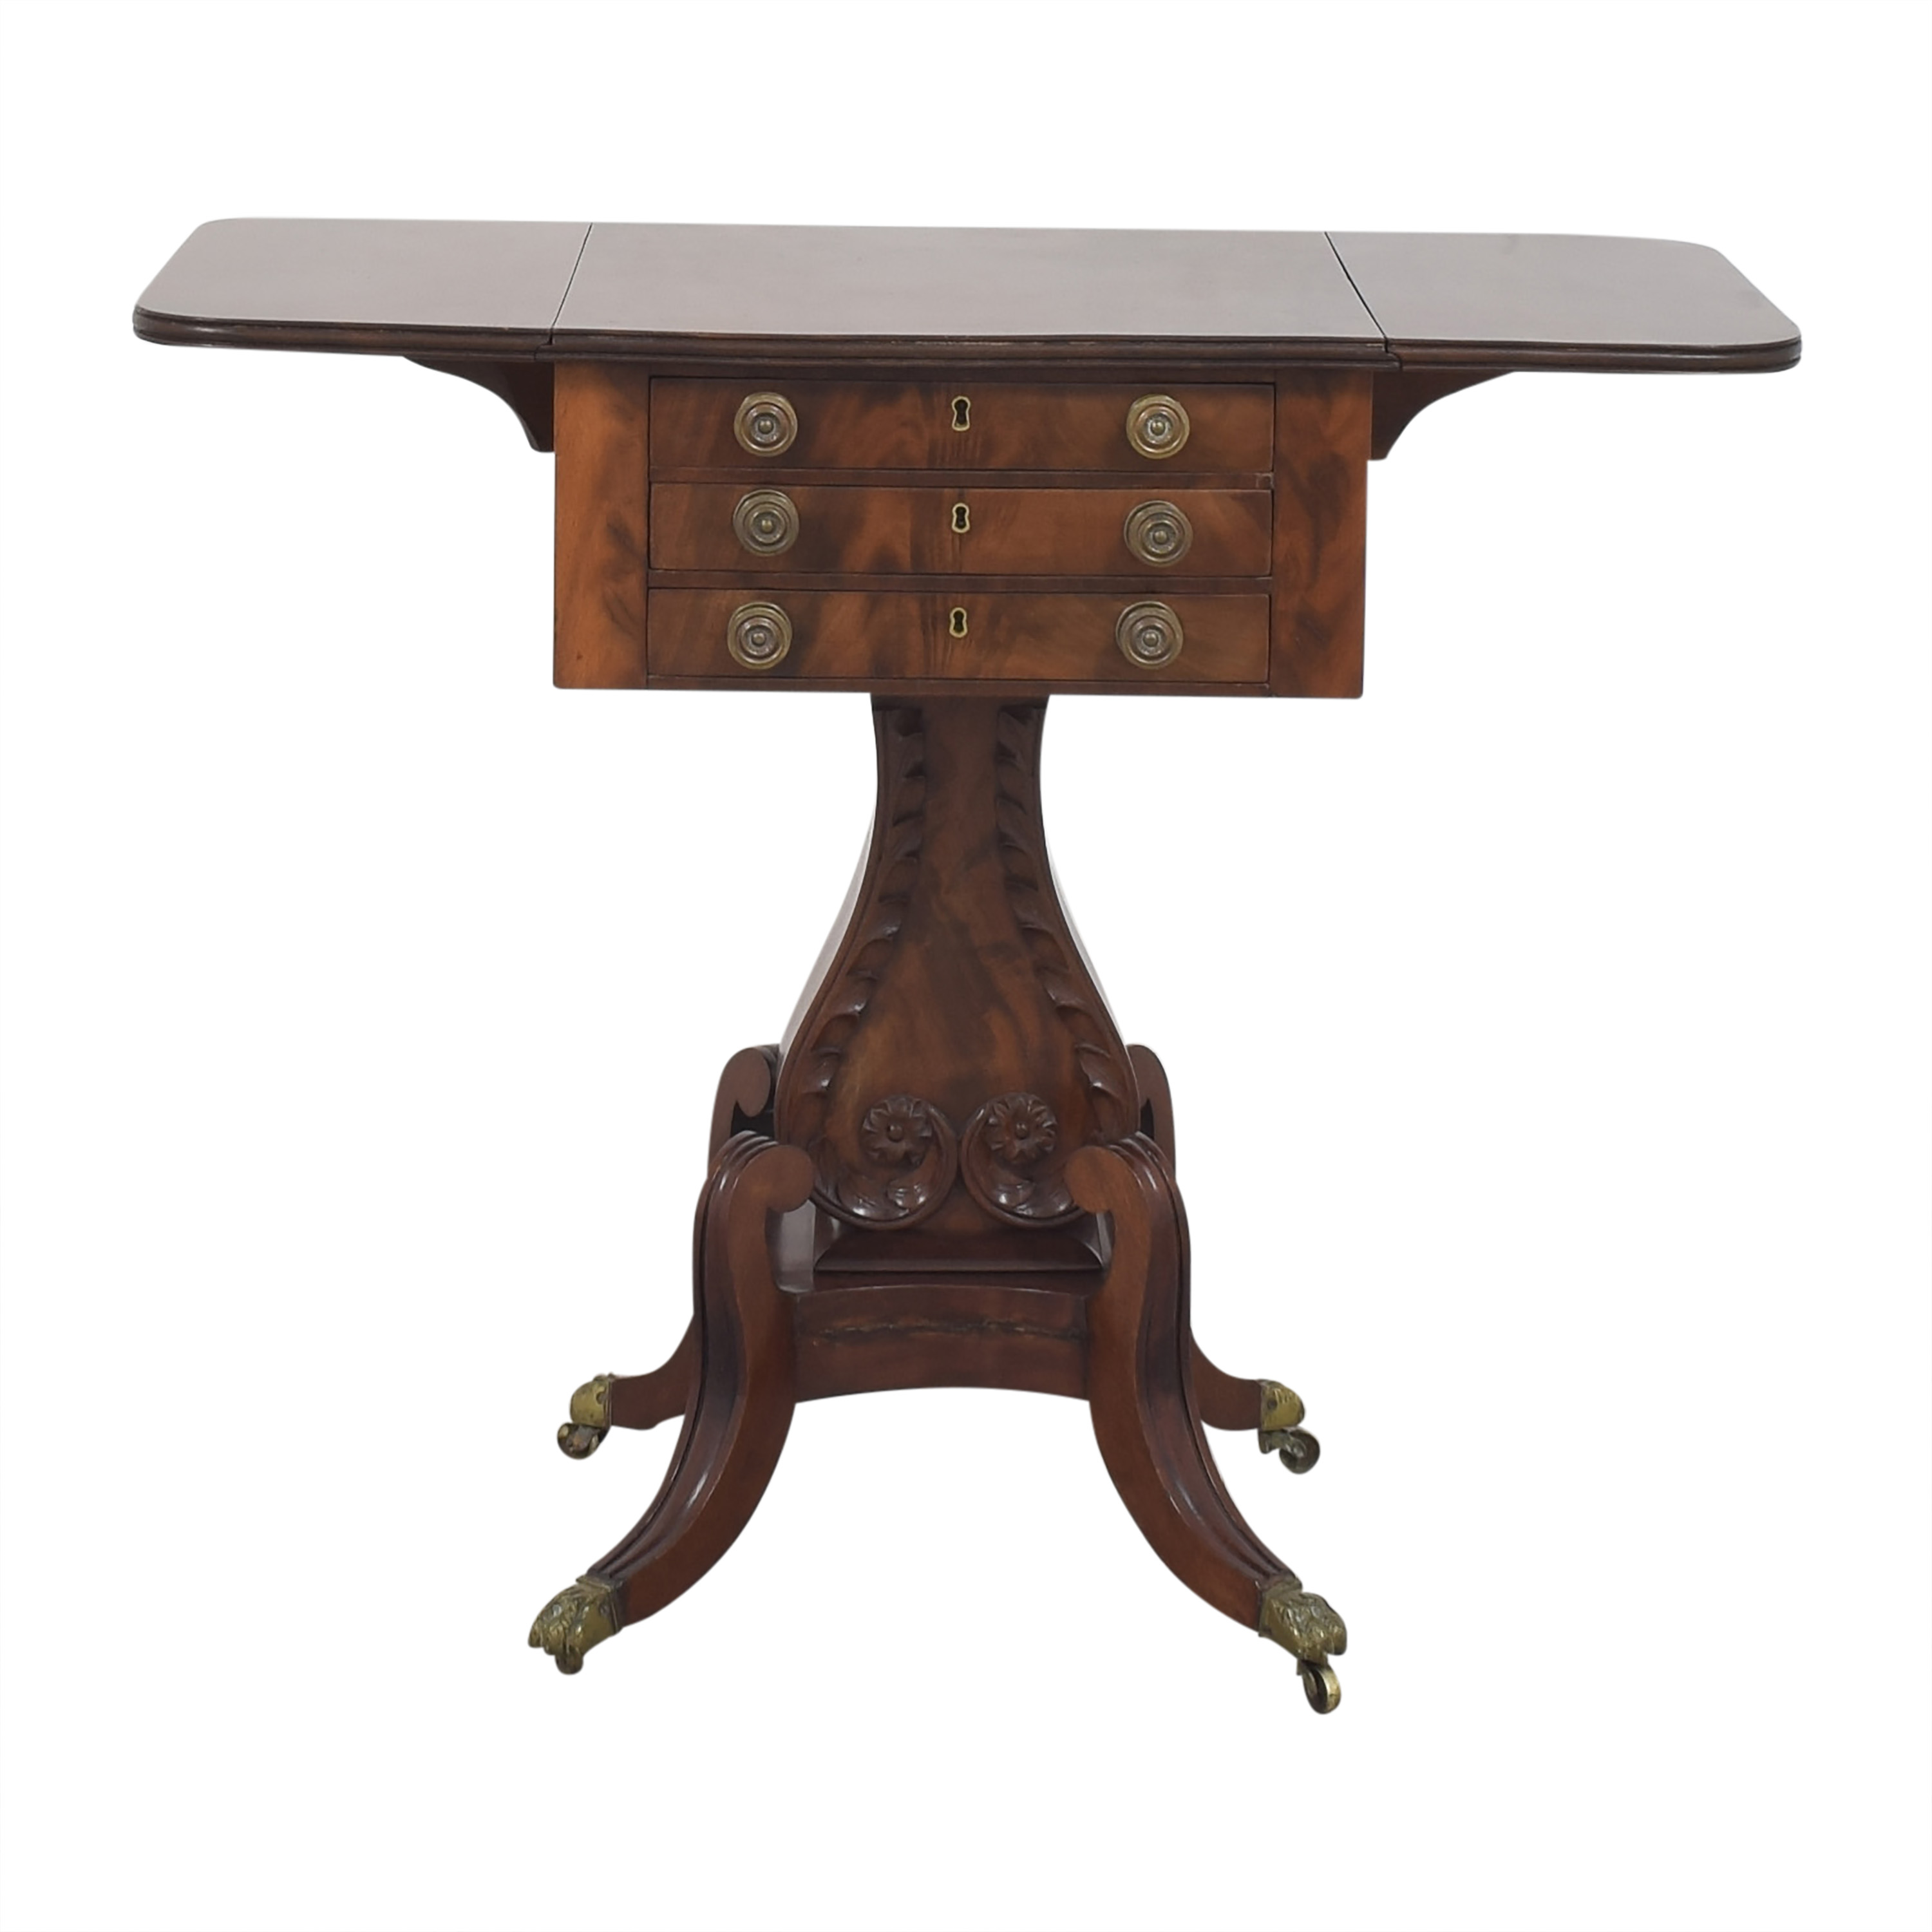 Duncan Phyfe-Style Lyre Base Writing Stand ma